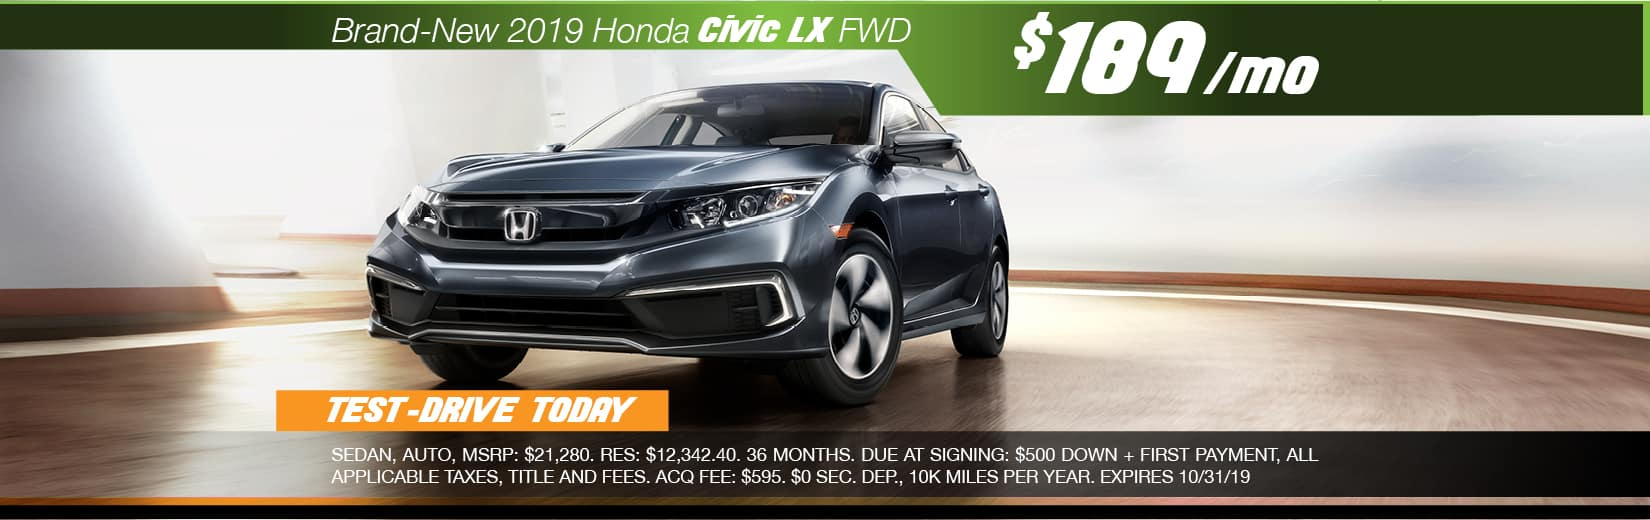 2019 Honda Civic LX FWD Lease for $189 a month for 36 months